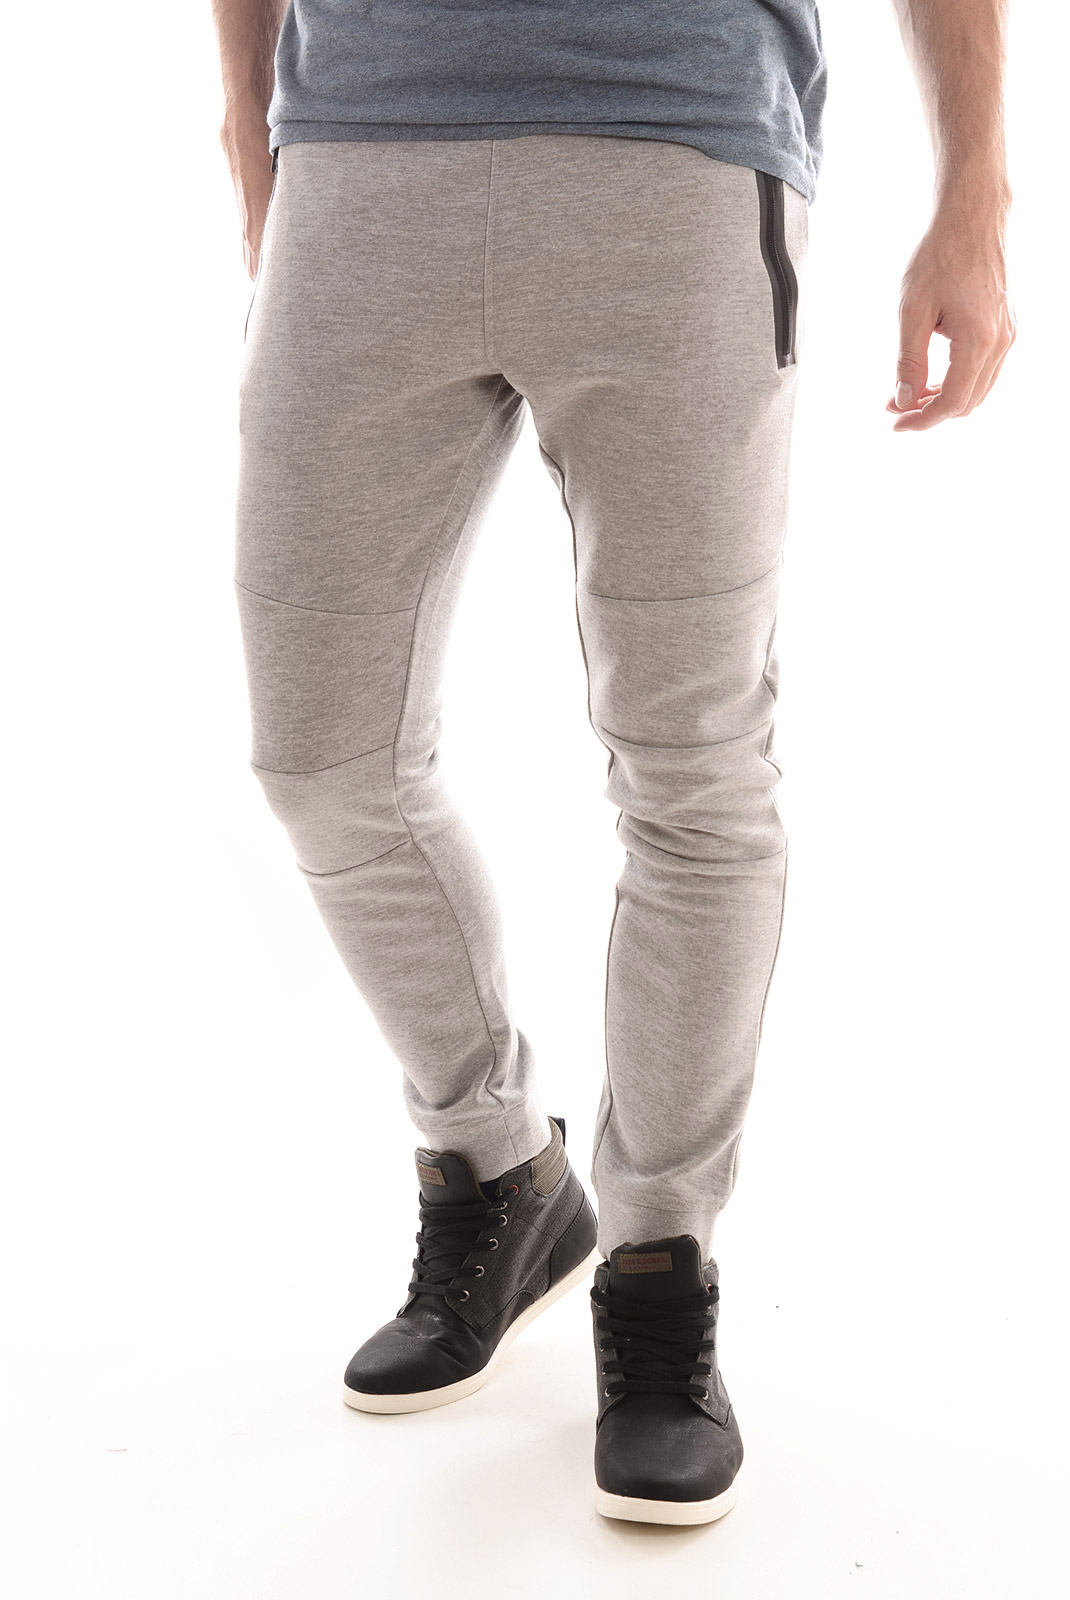 women's pants & tights No matter if you're on the field or just relaxing, stay stylish with a pair of Nike women's pants or tights. Our selection of lifestyle pants, ranging from leggings and tights to joggers and sweatpants, are a great fit for everyday wear.